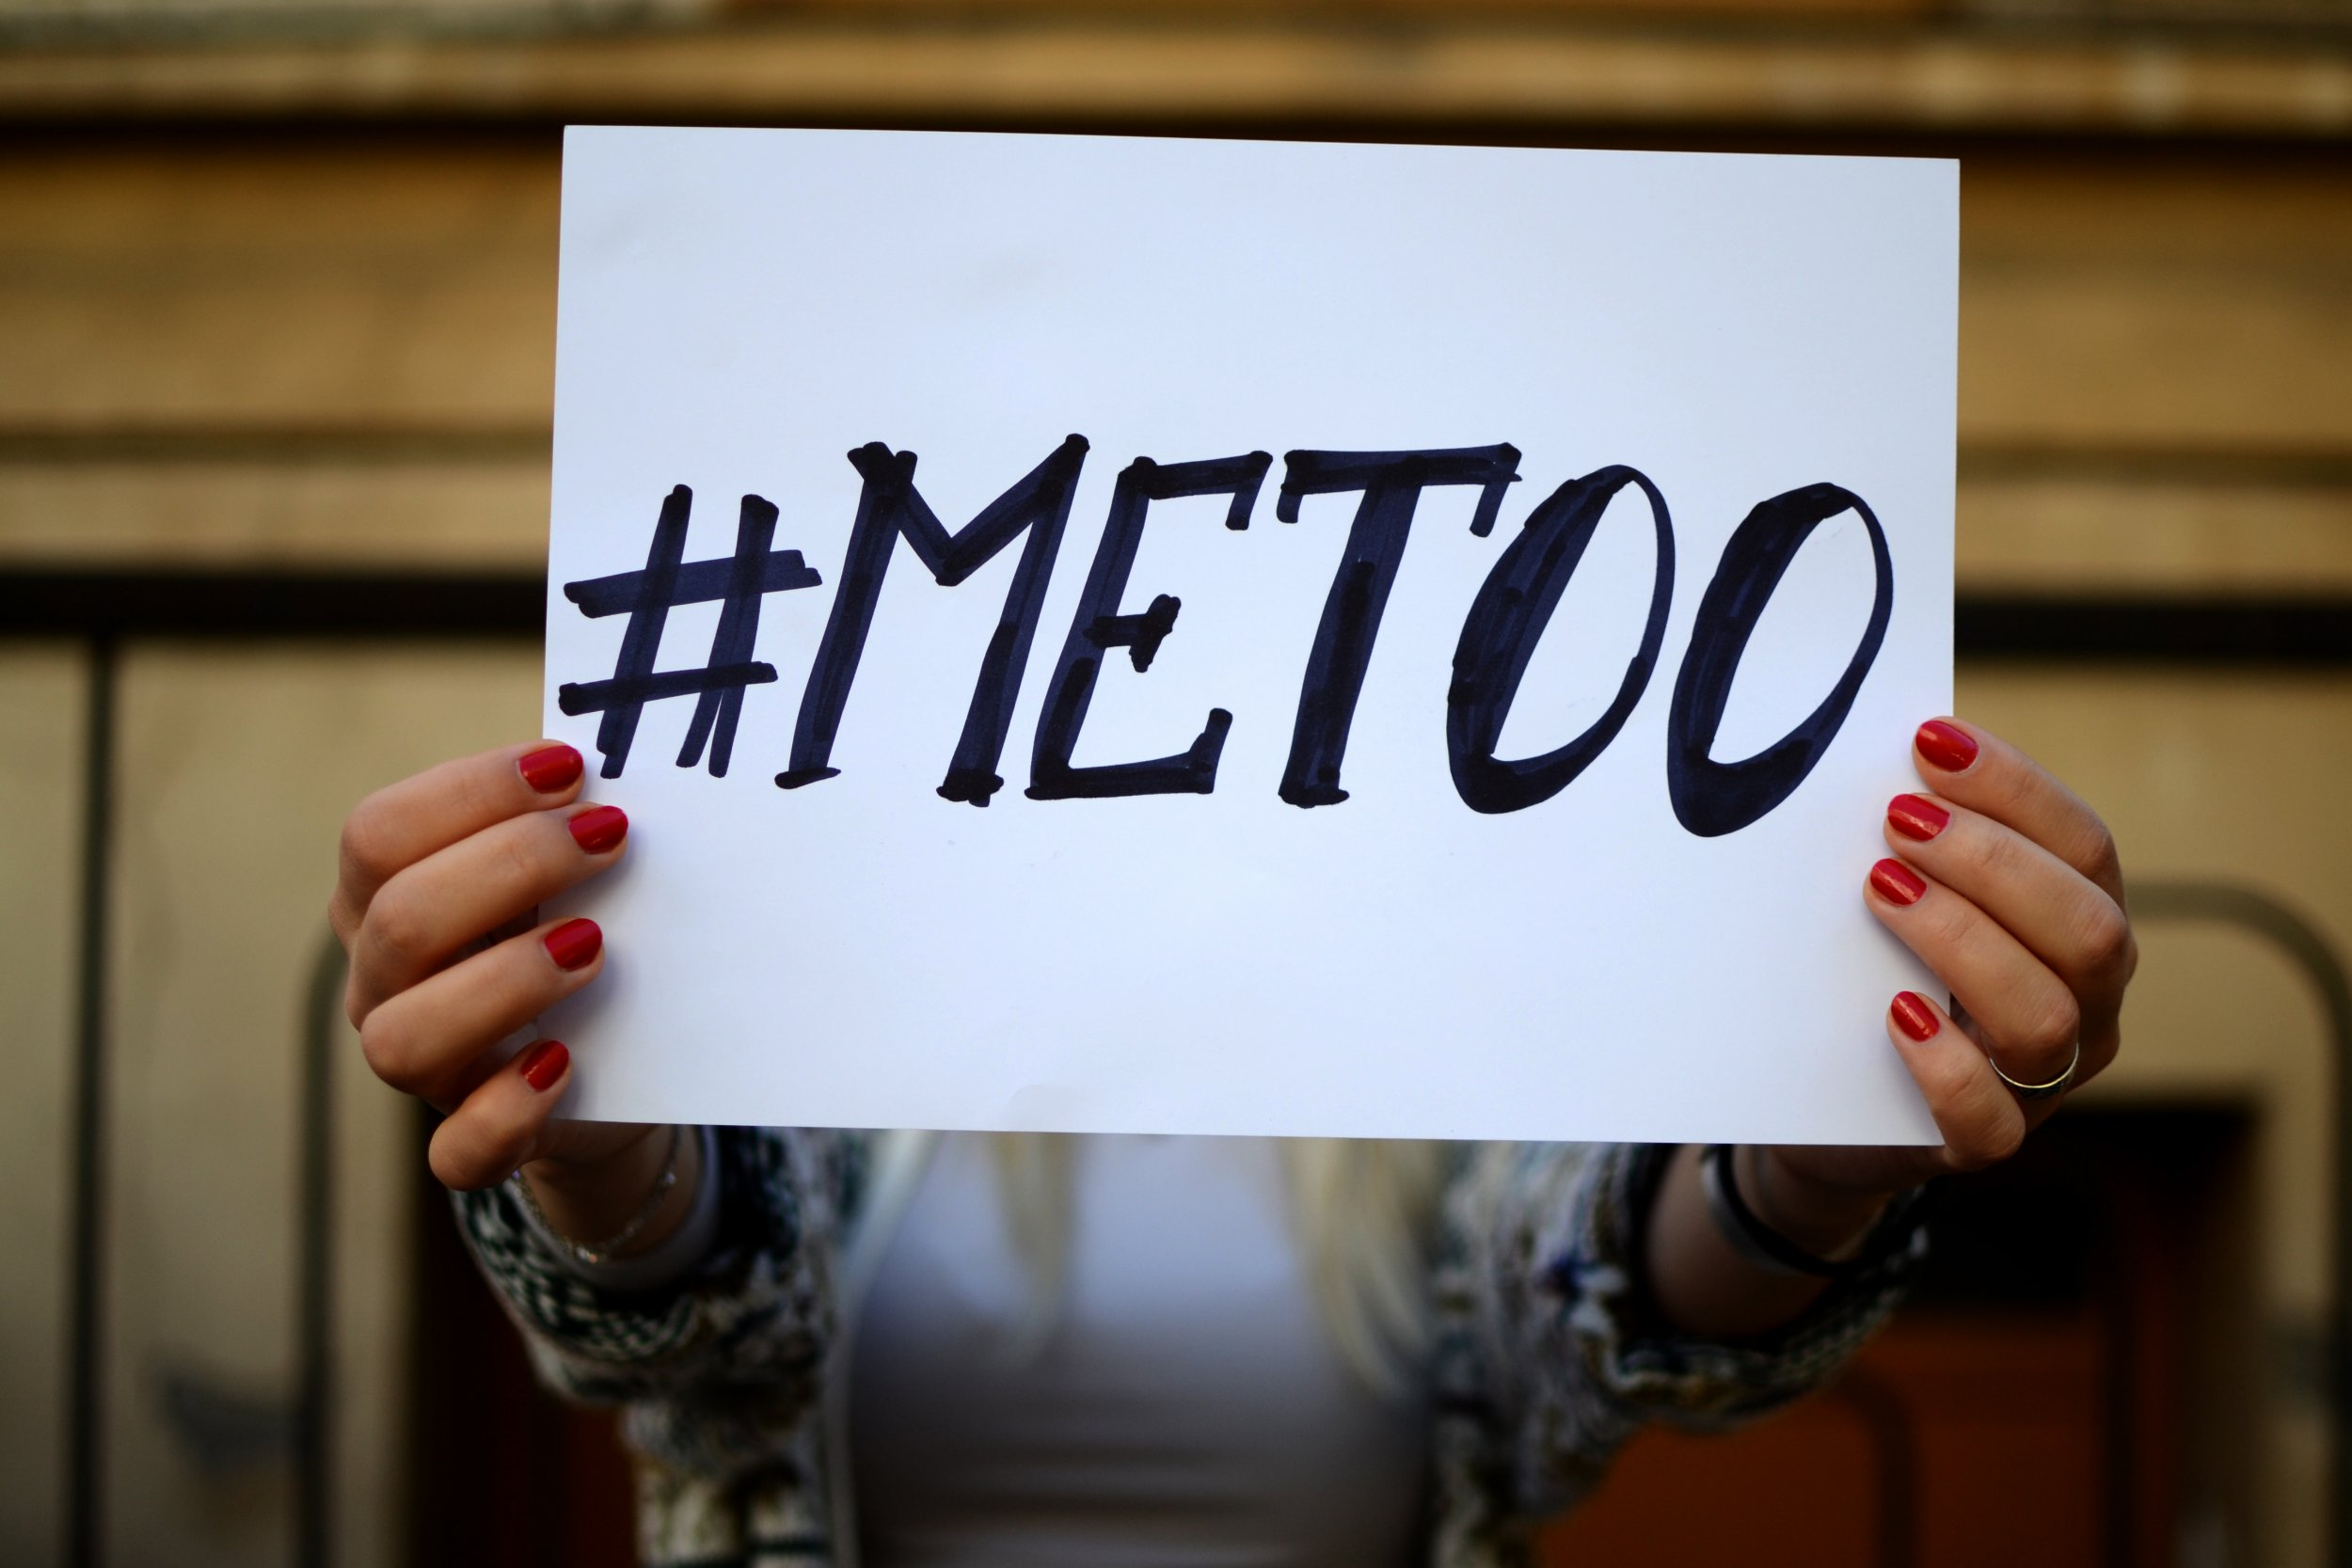 One in three women have been sexually harassed at work despite #MeToo movement